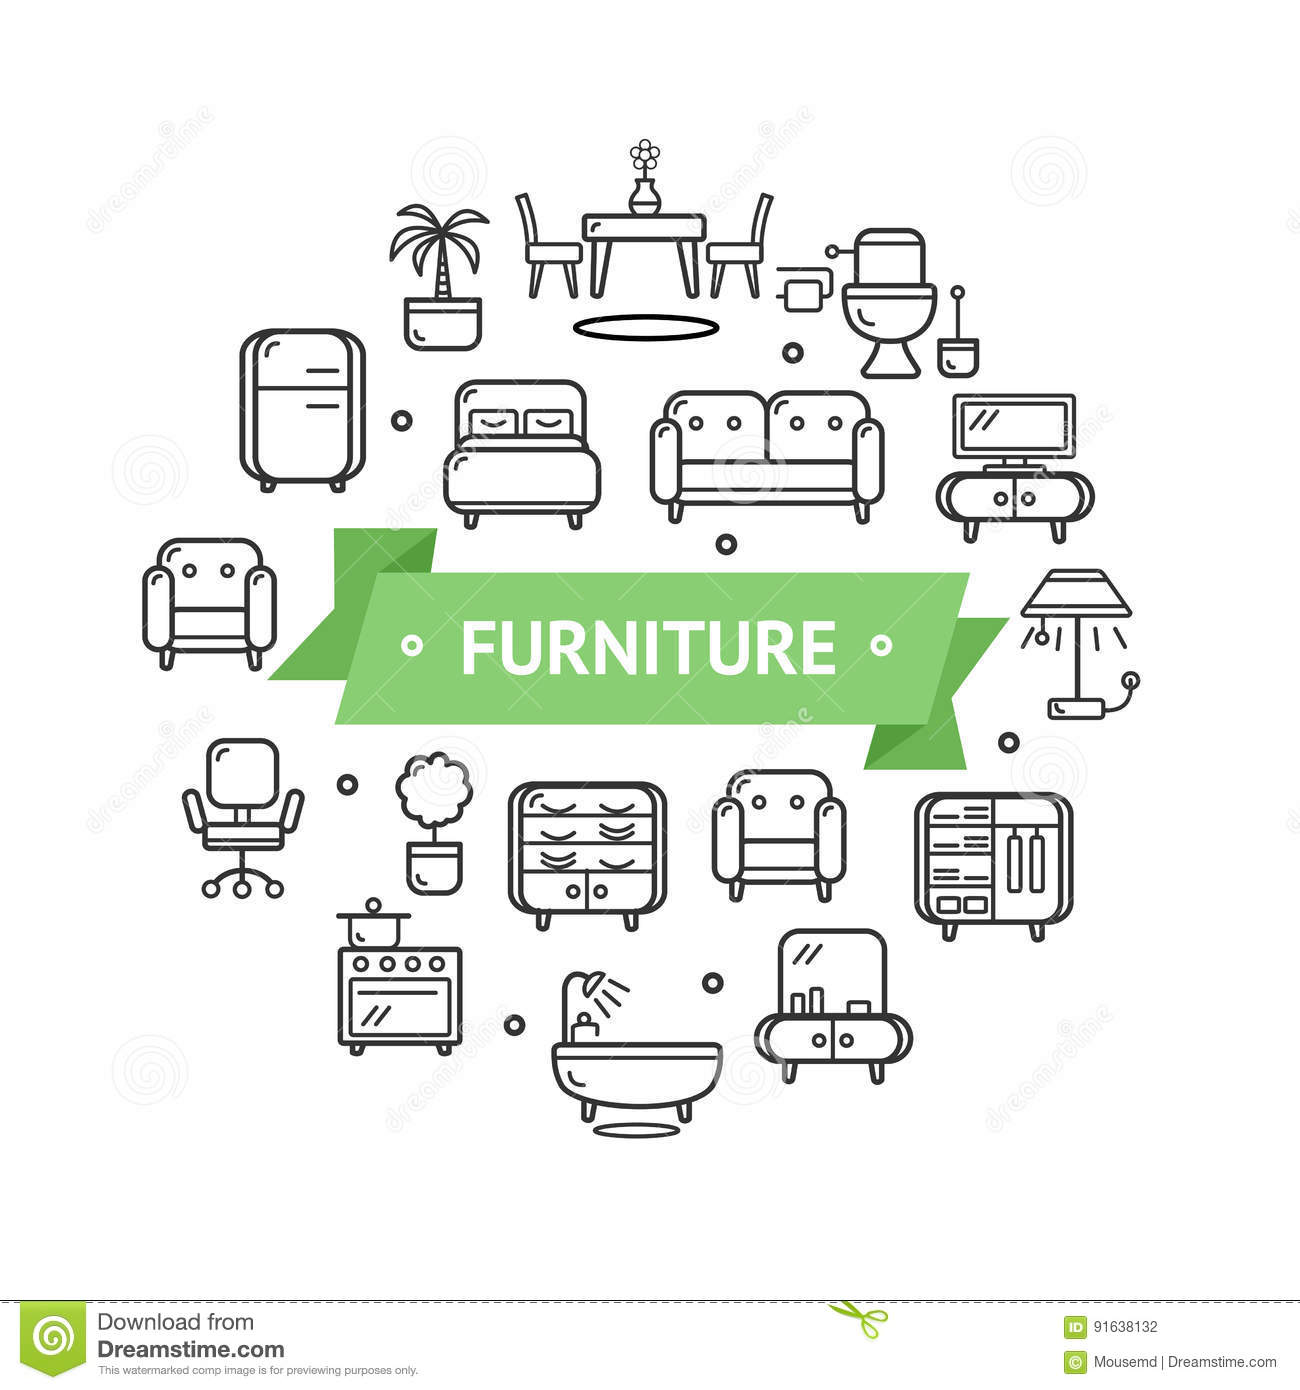 Furniture round design template thin line icon concept for Furniture layout app